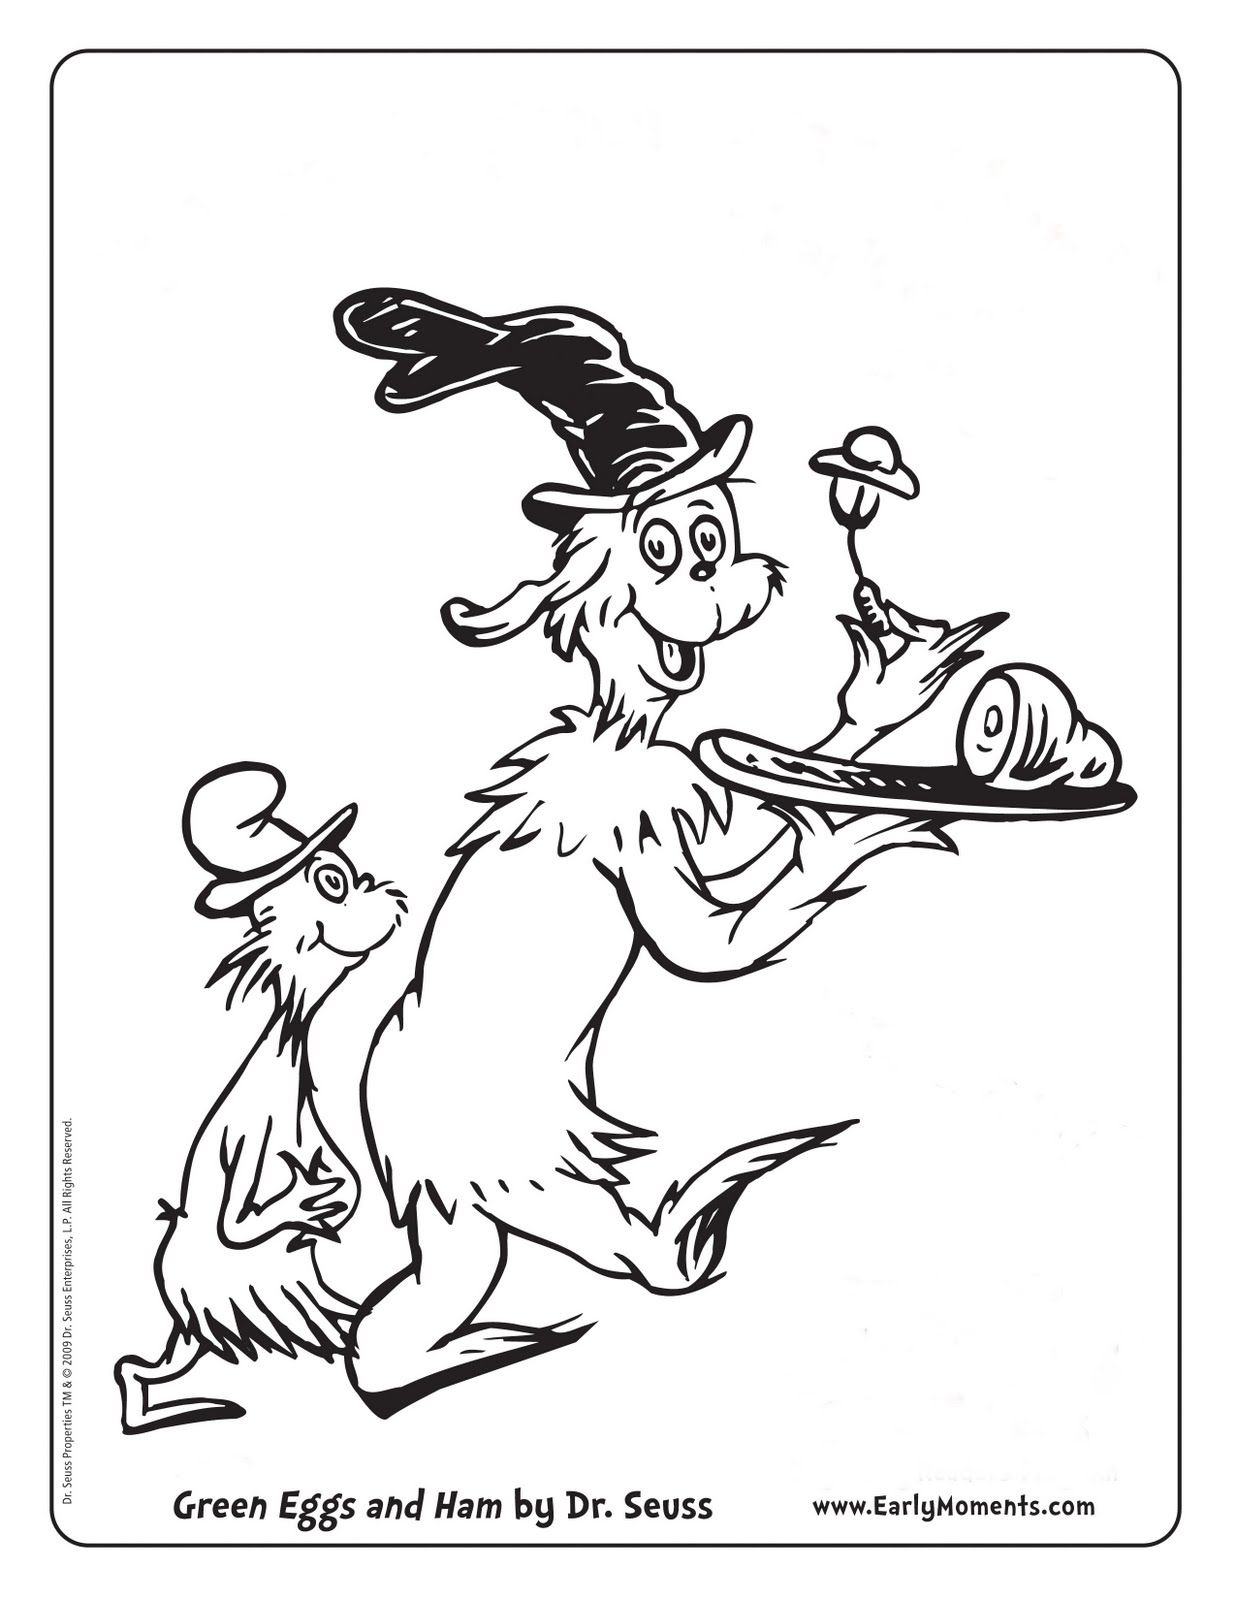 Green eggs and ham, Dr seuss coloring sheet, Dr seuss coloring pages